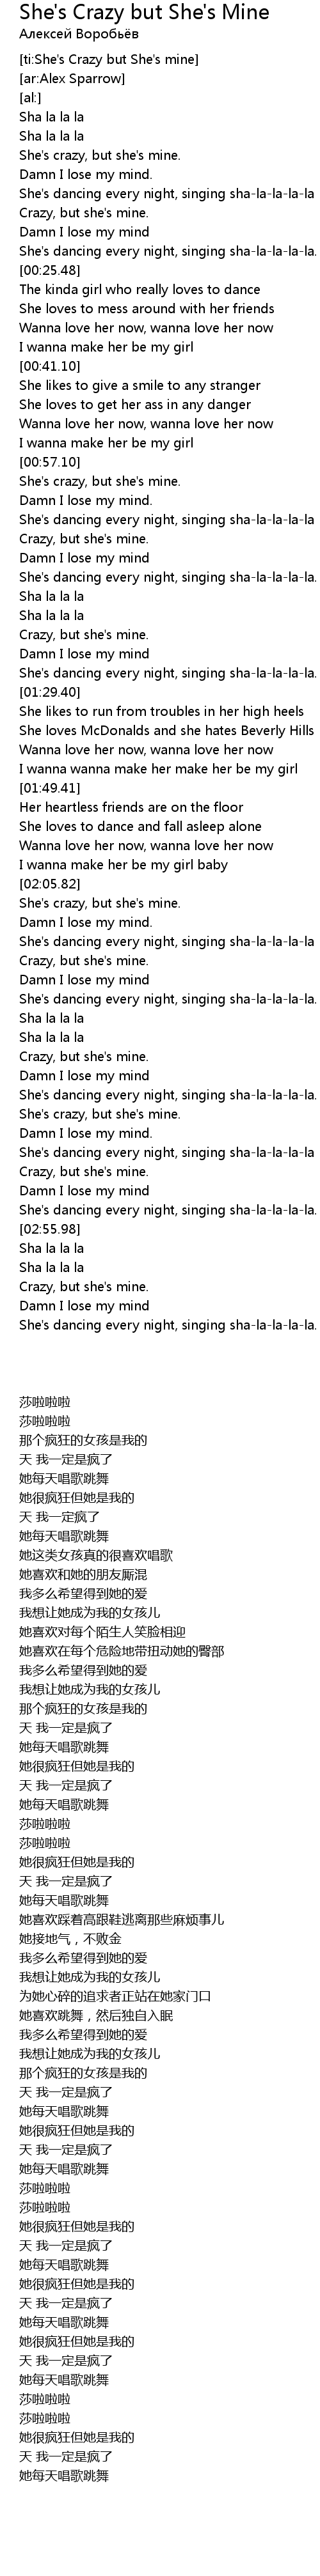 She S Crazy But She S Mine Lyrics Follow Lyrics